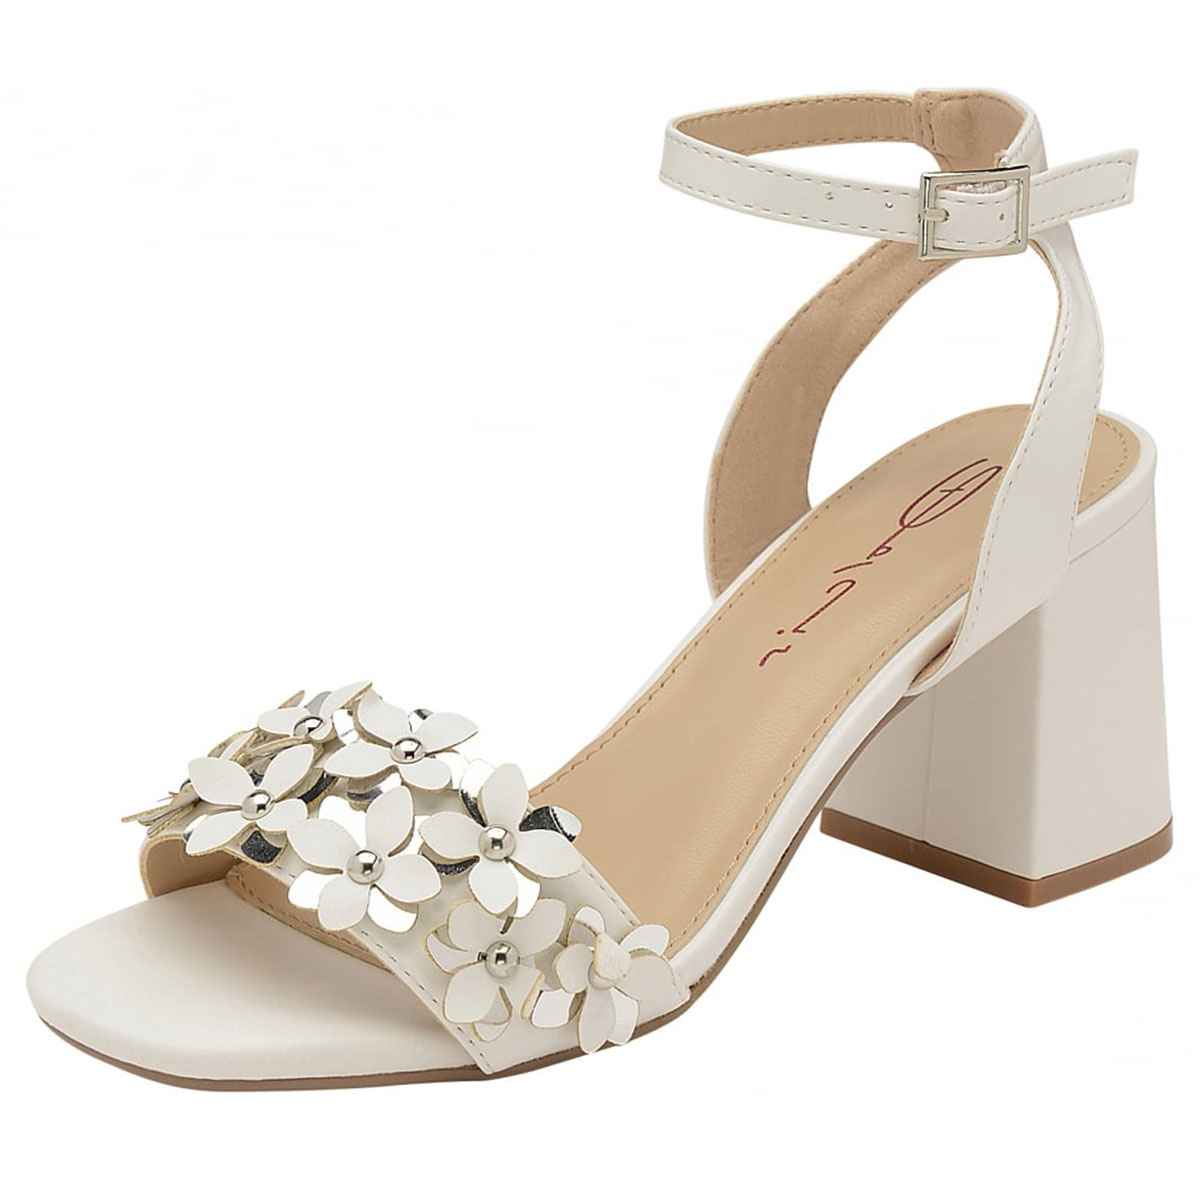 f073a83161dd Sentinel LADIES DOLCIS NIAMH WHITE BLOCK HEEL ANKLE PEEP-TOE SANDALS  STRAPPY SHOES UK 3-